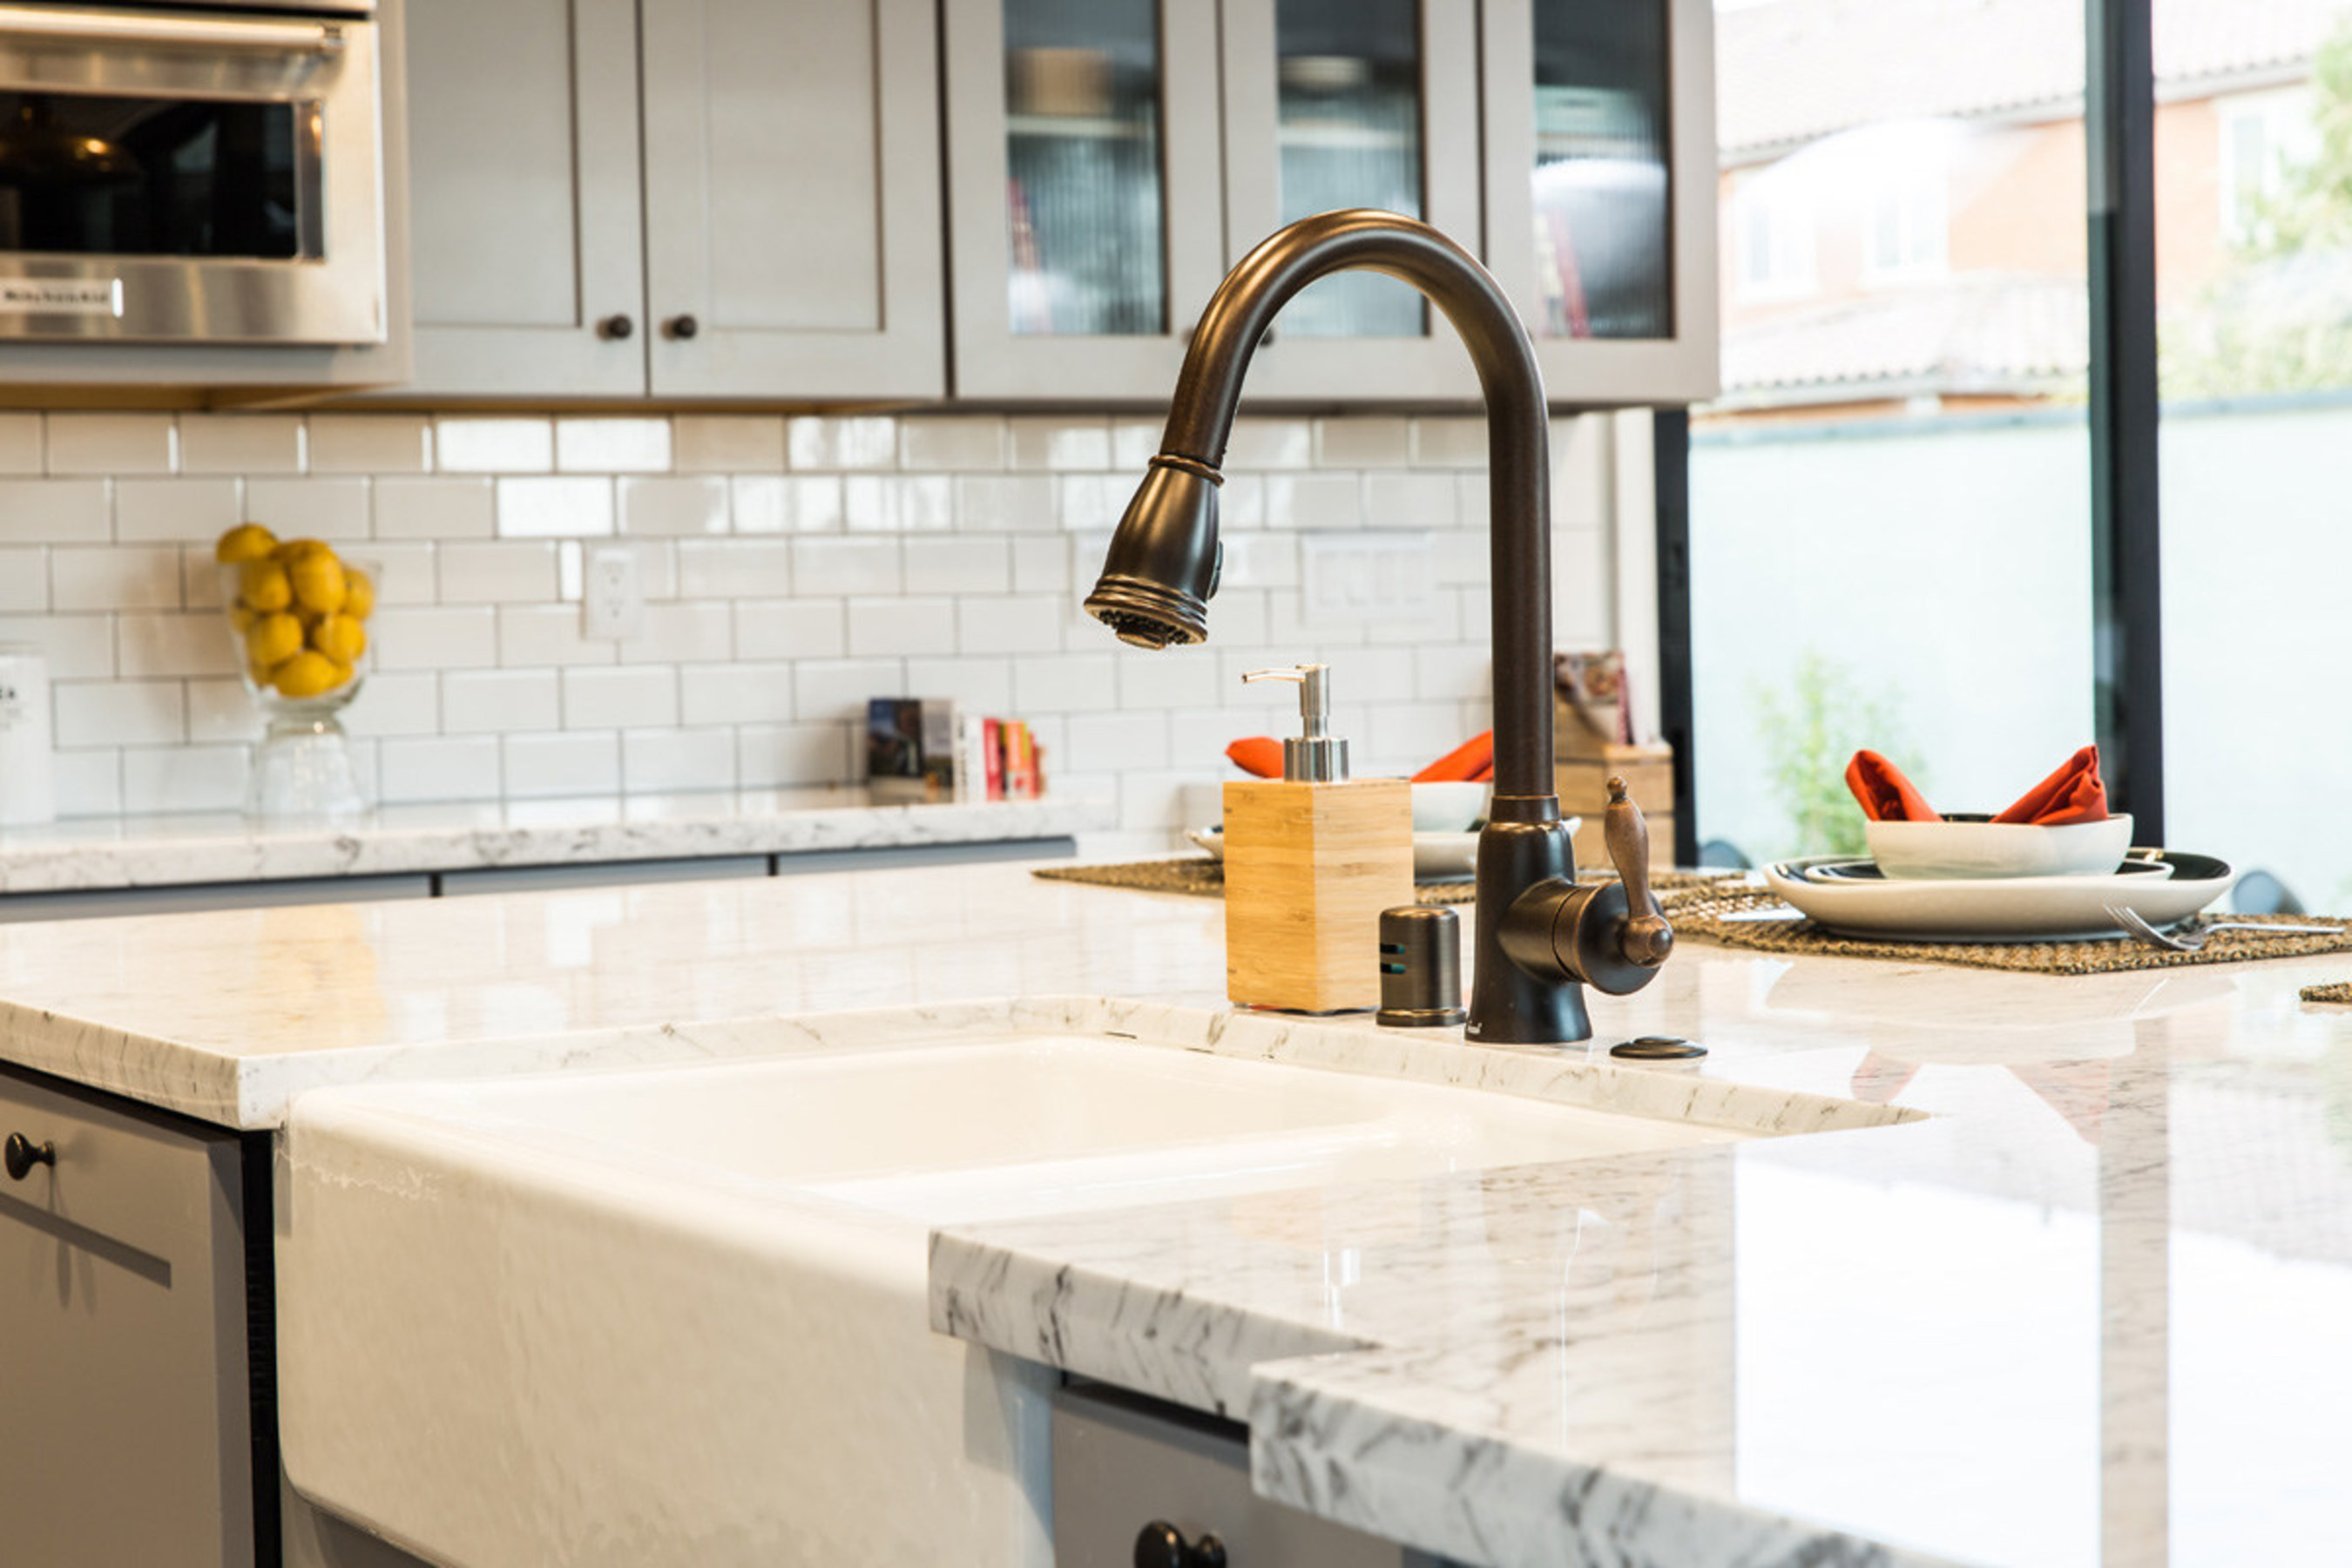 Responsive Home Creative Director Bobby Berk paired a white farmhouse sink with a Danze pull-down faucet in a tumbled bronze finish. The juxtaposition of mixing and matching elements such as these are at the heart of millennial style. (BPT)